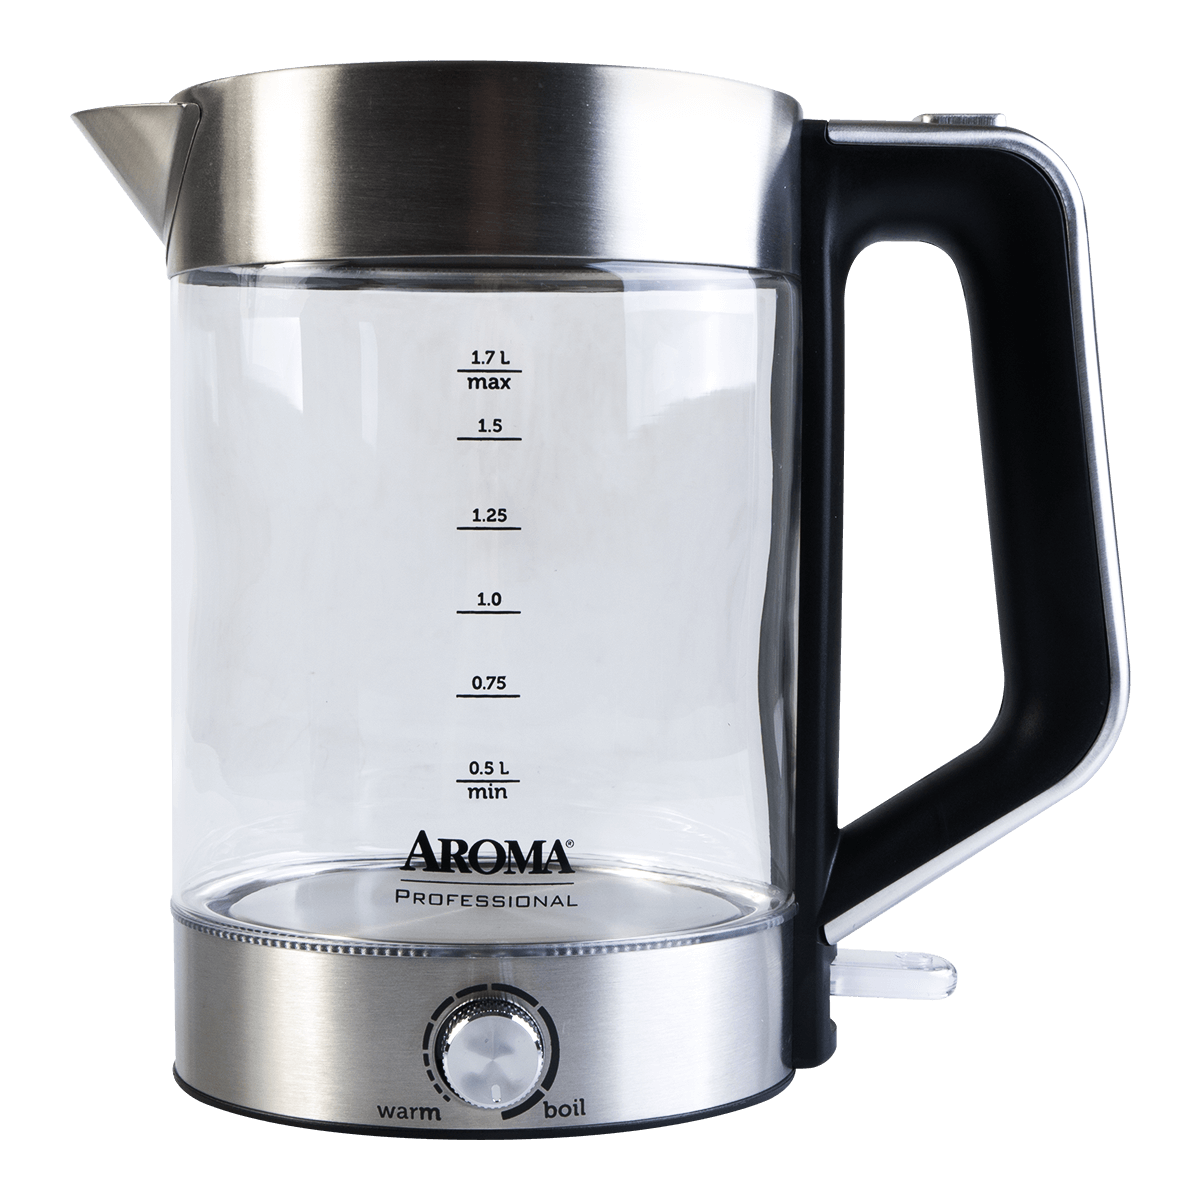 Yamibuy.com:Customer reviews:AROMA 1.7L Glass Electric Kettle with Temperature Dial (2 Year Manufacturer Warranty)